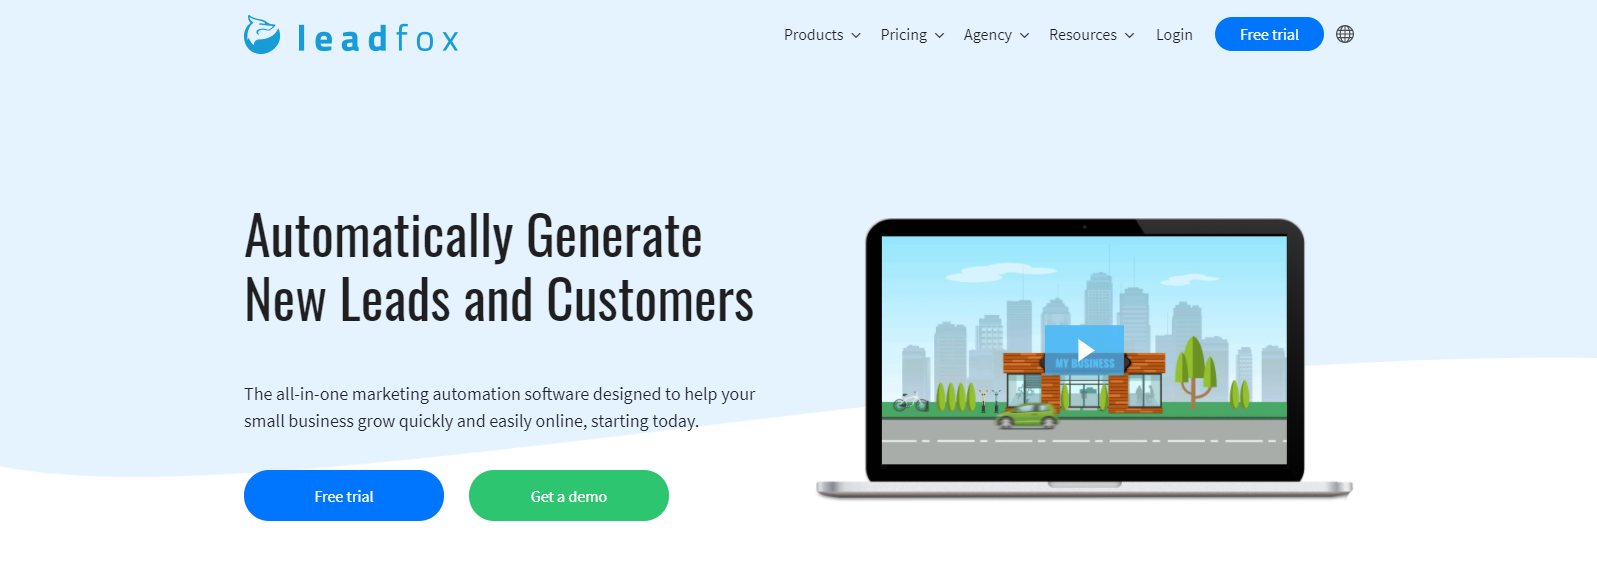 Marketing-automation-software-for-SMB-and-agency-LeadFox